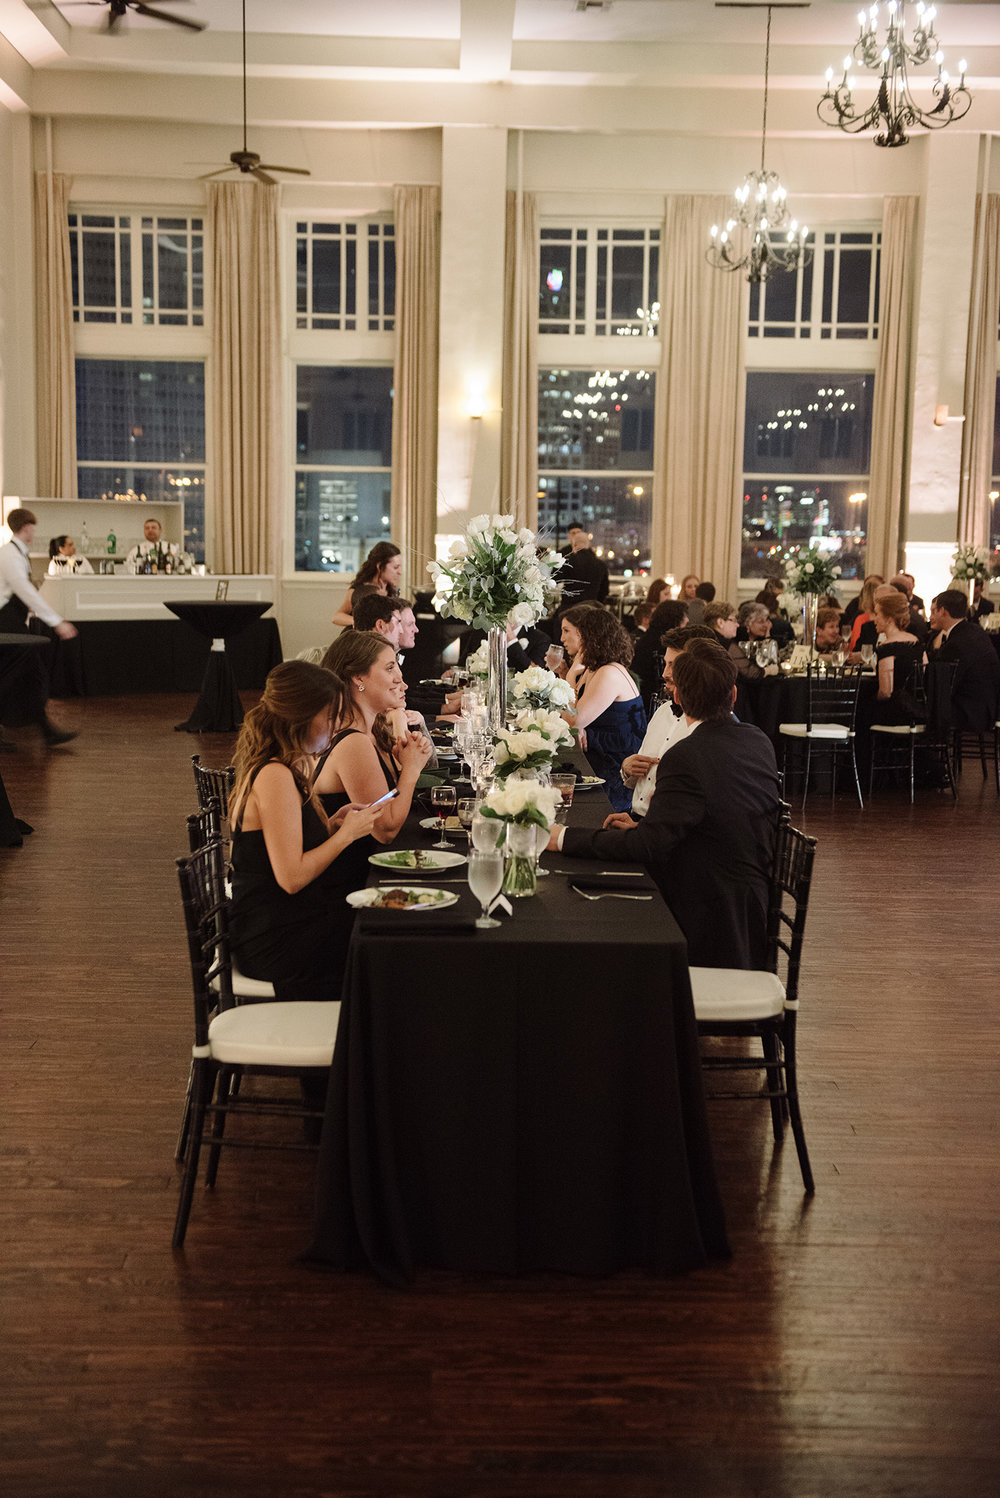 Dallas Wedding Planner - Winter Wedding at The Room on Main - Allday Events - 105.jpg